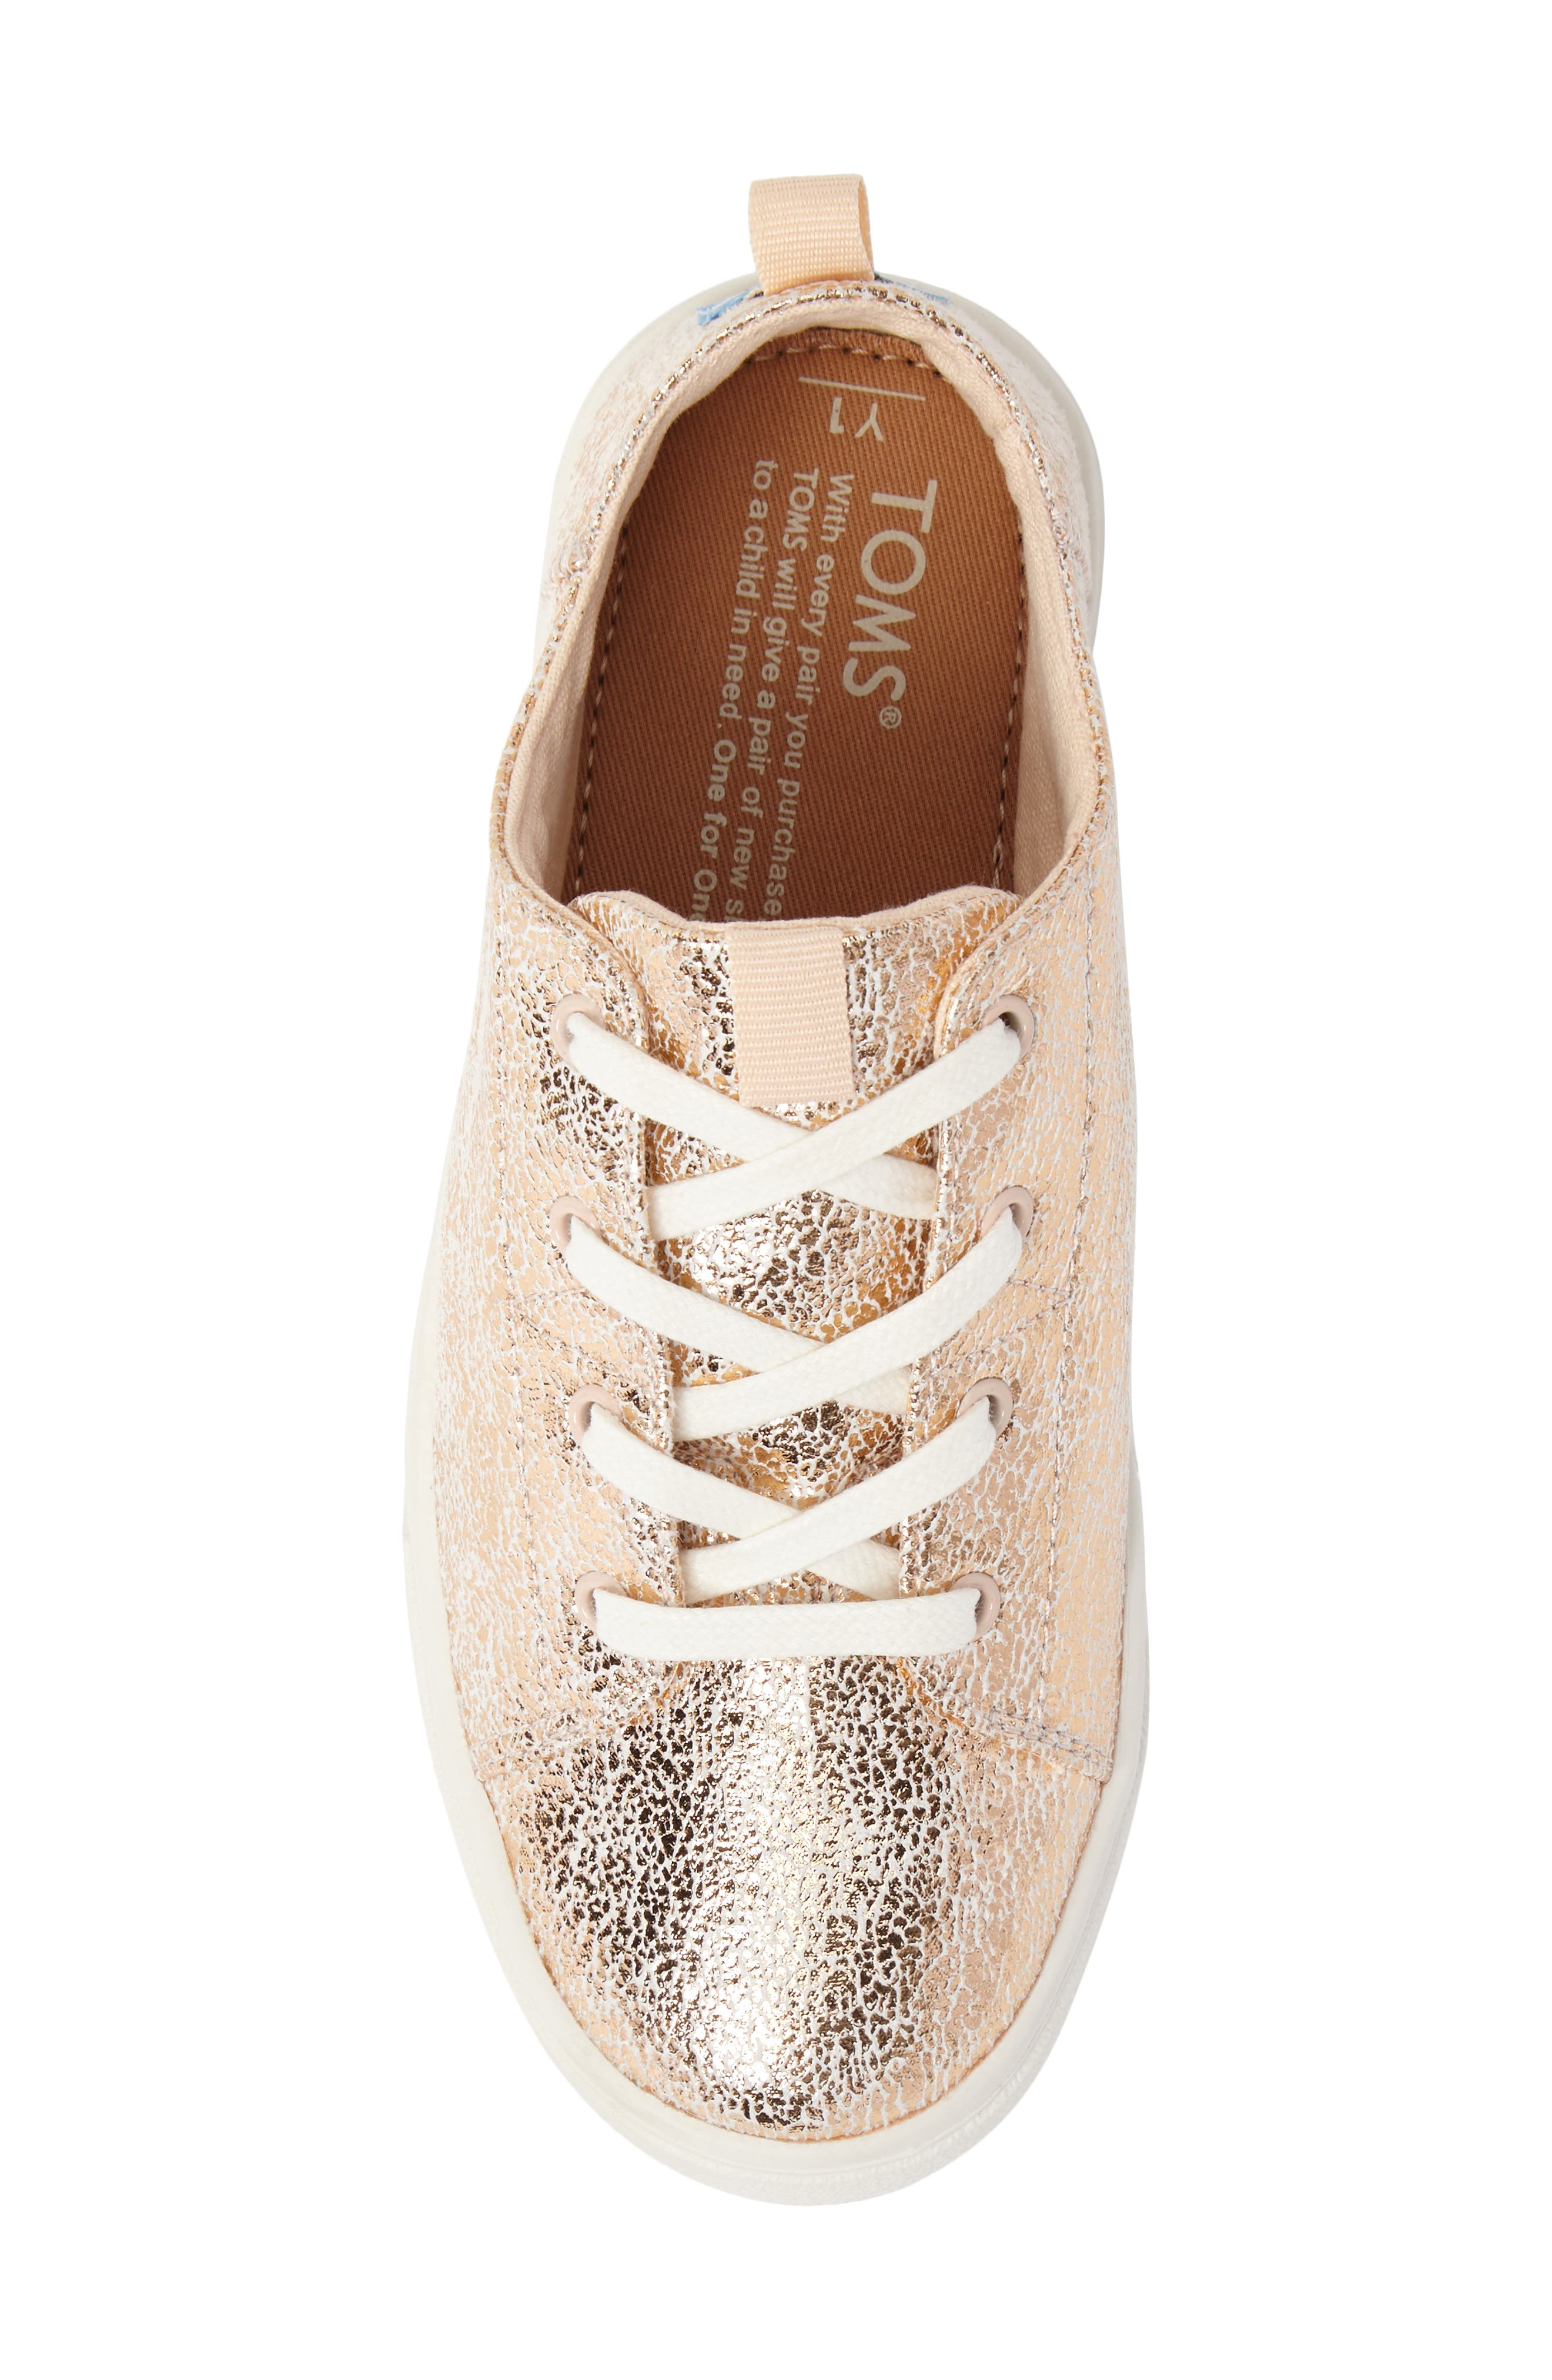 Lenny Metallic Sneaker,                             Alternate thumbnail 5, color,                             ROSE GOLD CRACKLE FOIL